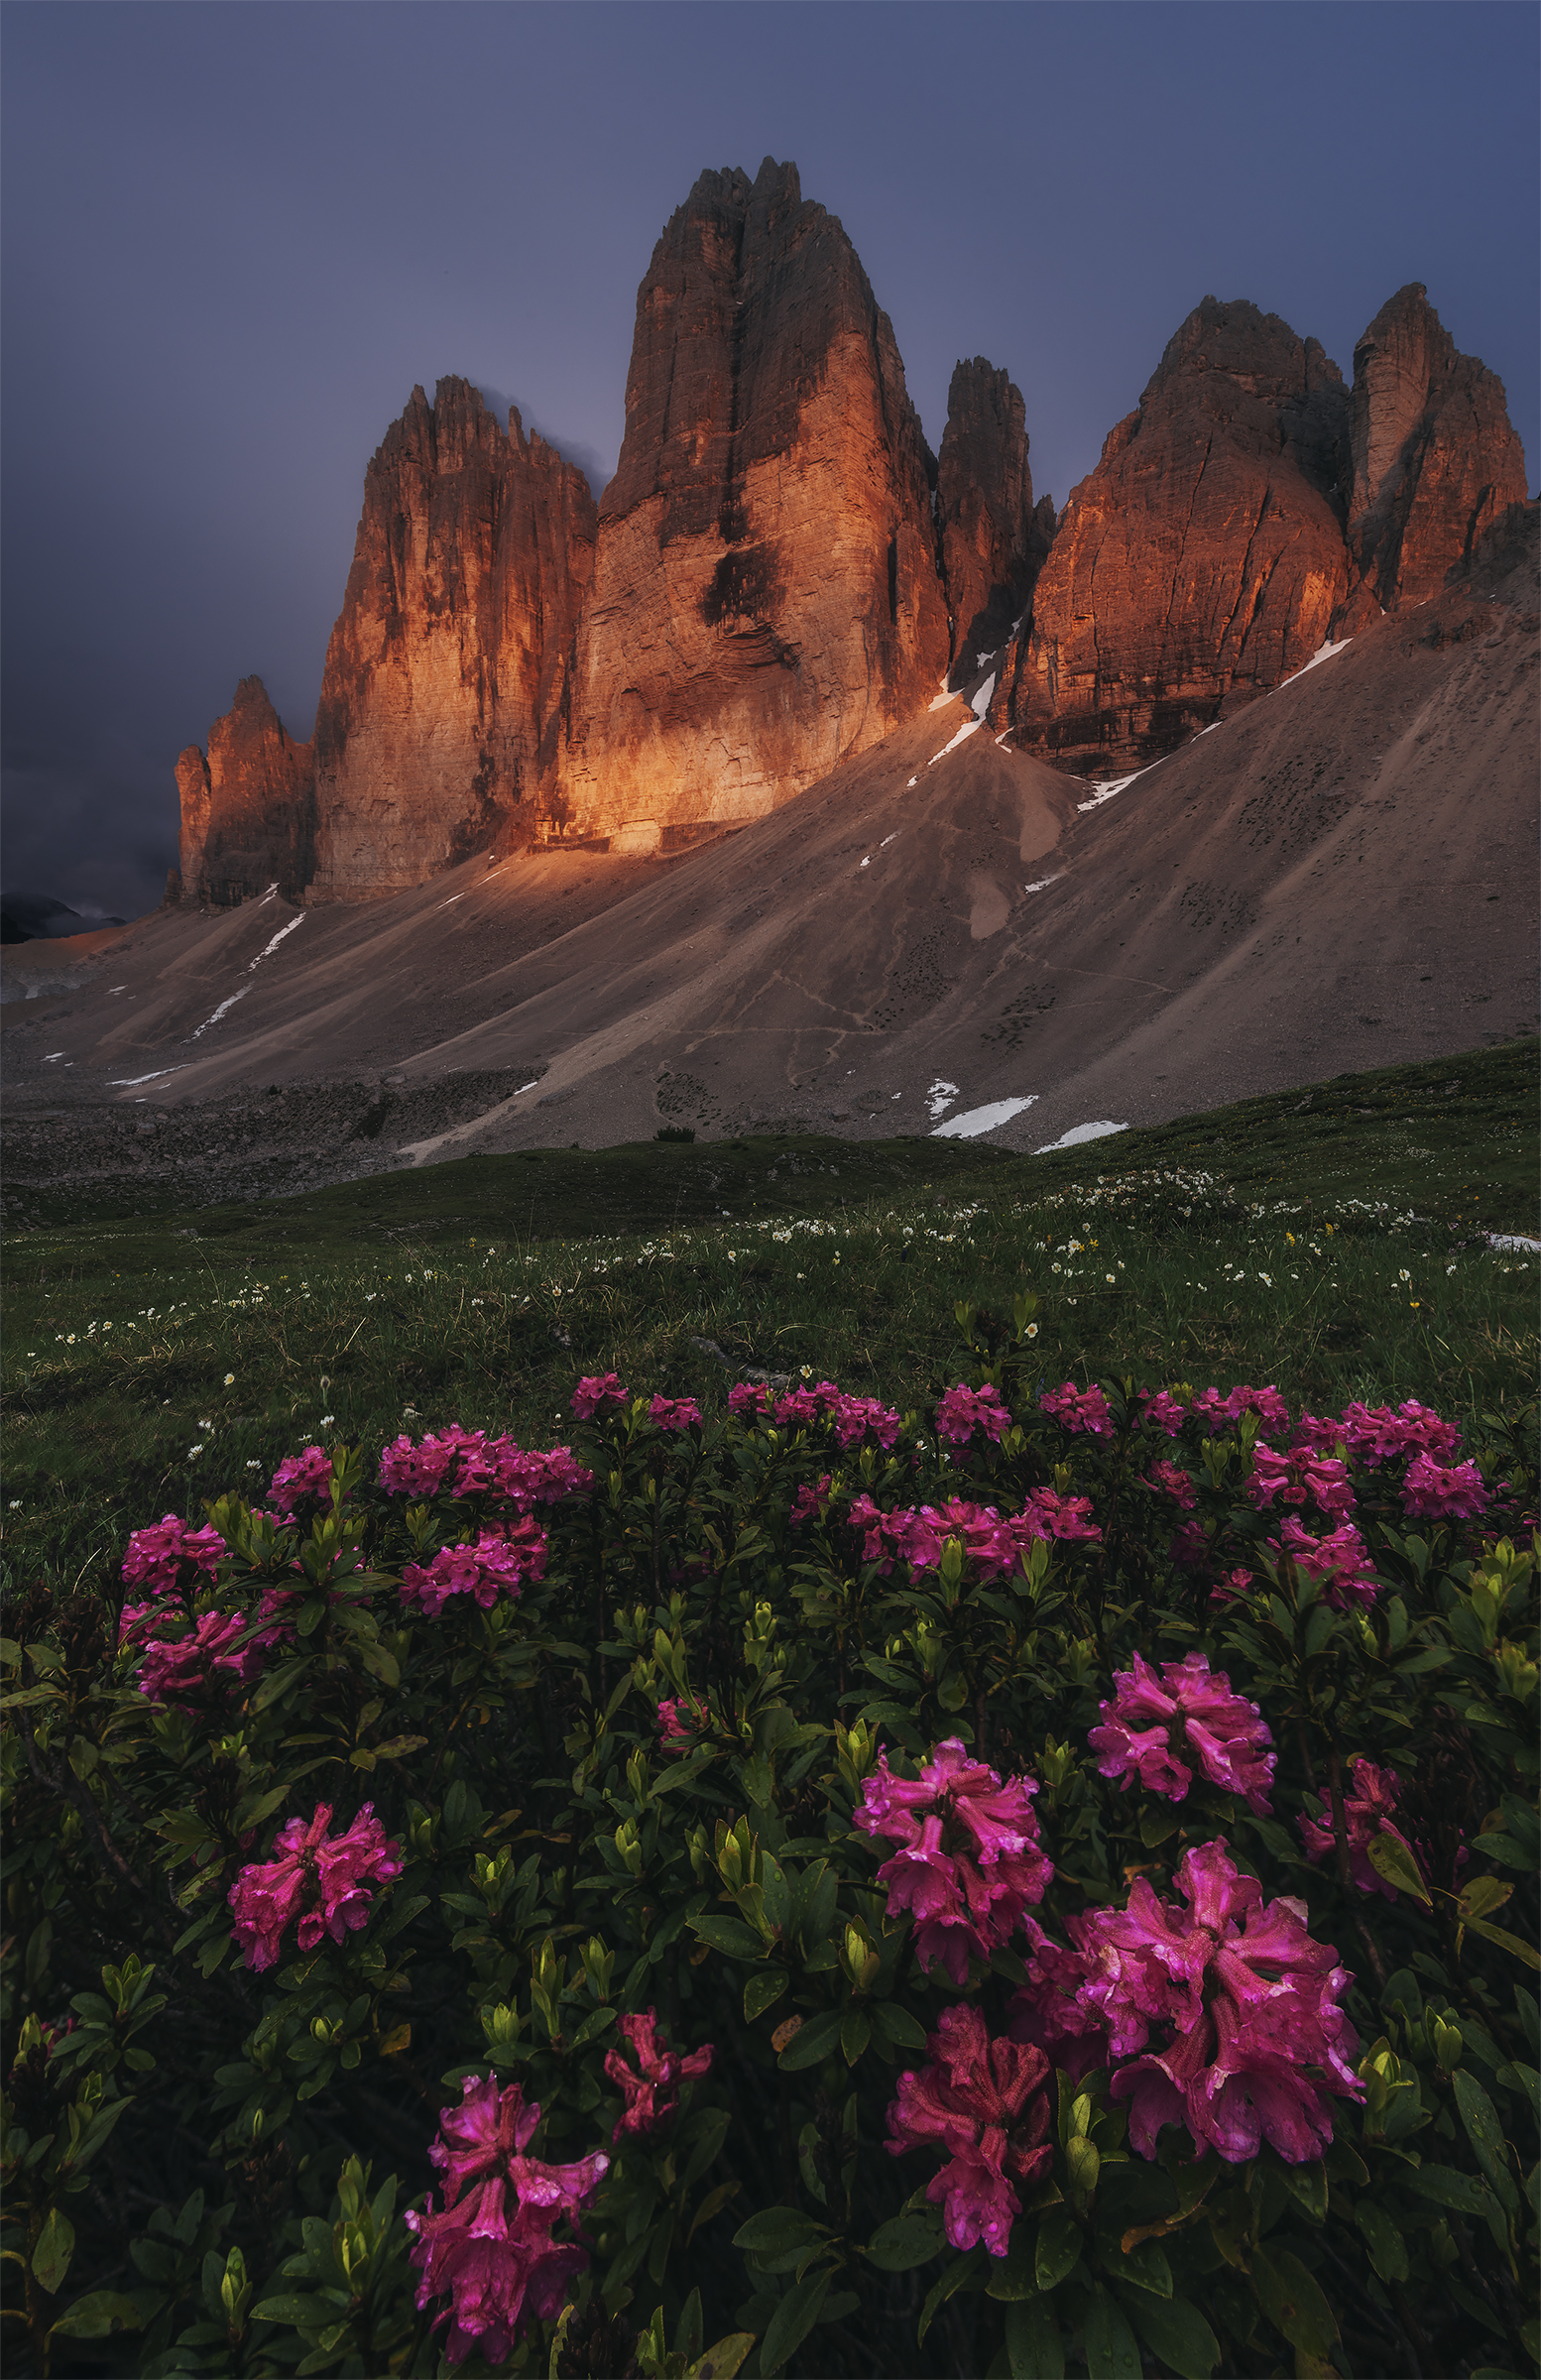 dolomites wildflowers photography tour